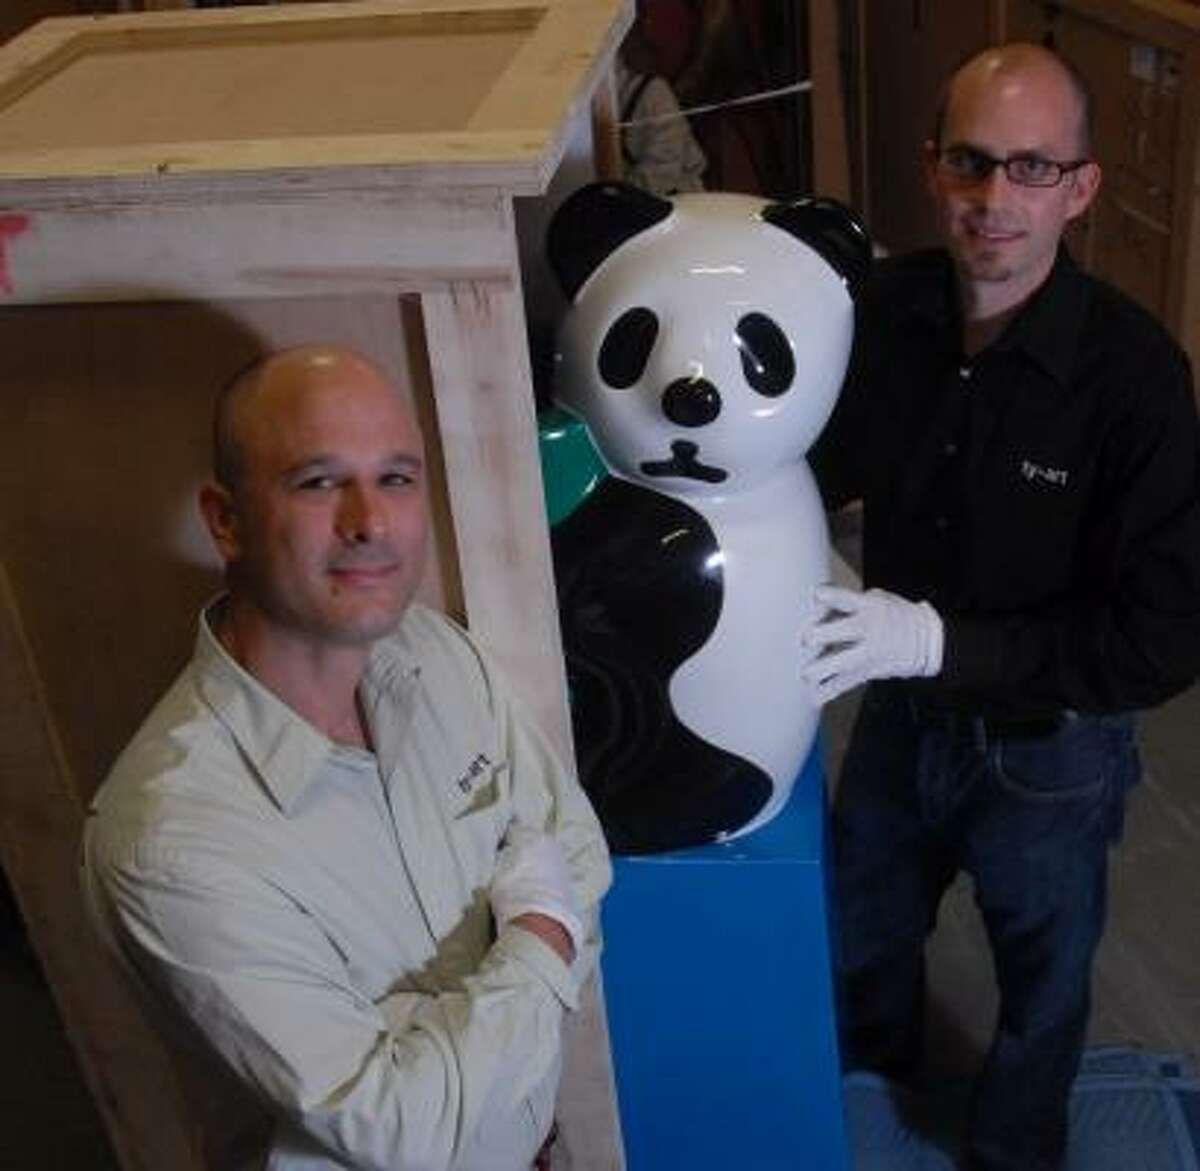 Kyle Young, left, and Christopher Tribble are co-owners of Ty-Art, an art storage and transportation company. They're in a storage facility with Sui Jianguo's Waste Beauty, a piece that will be on exhibit starting July 22 at the Houston Museum of Fine Arts.